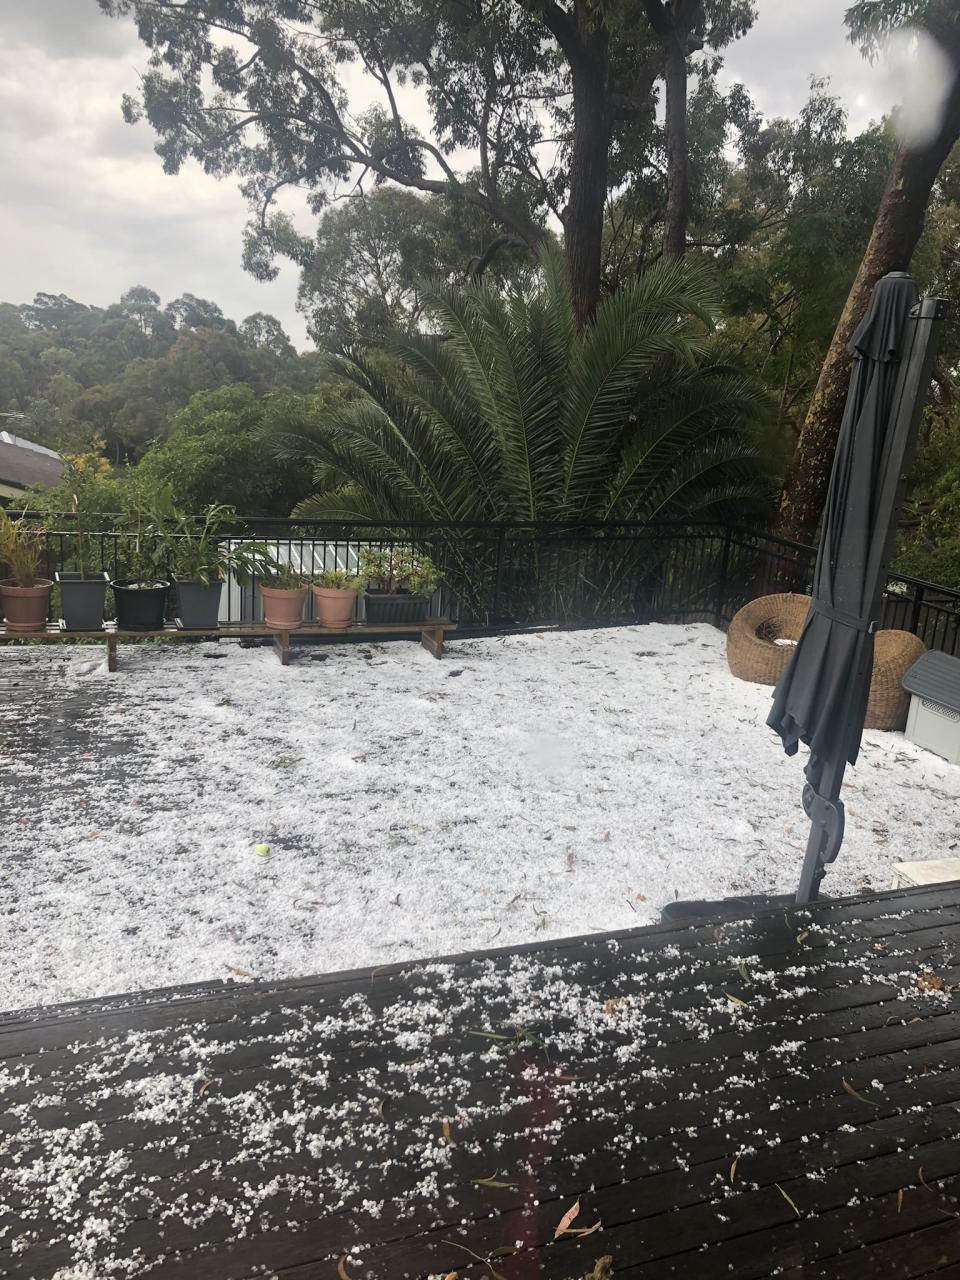 Hail blankets the ground at a property in Bangor, Sydney.